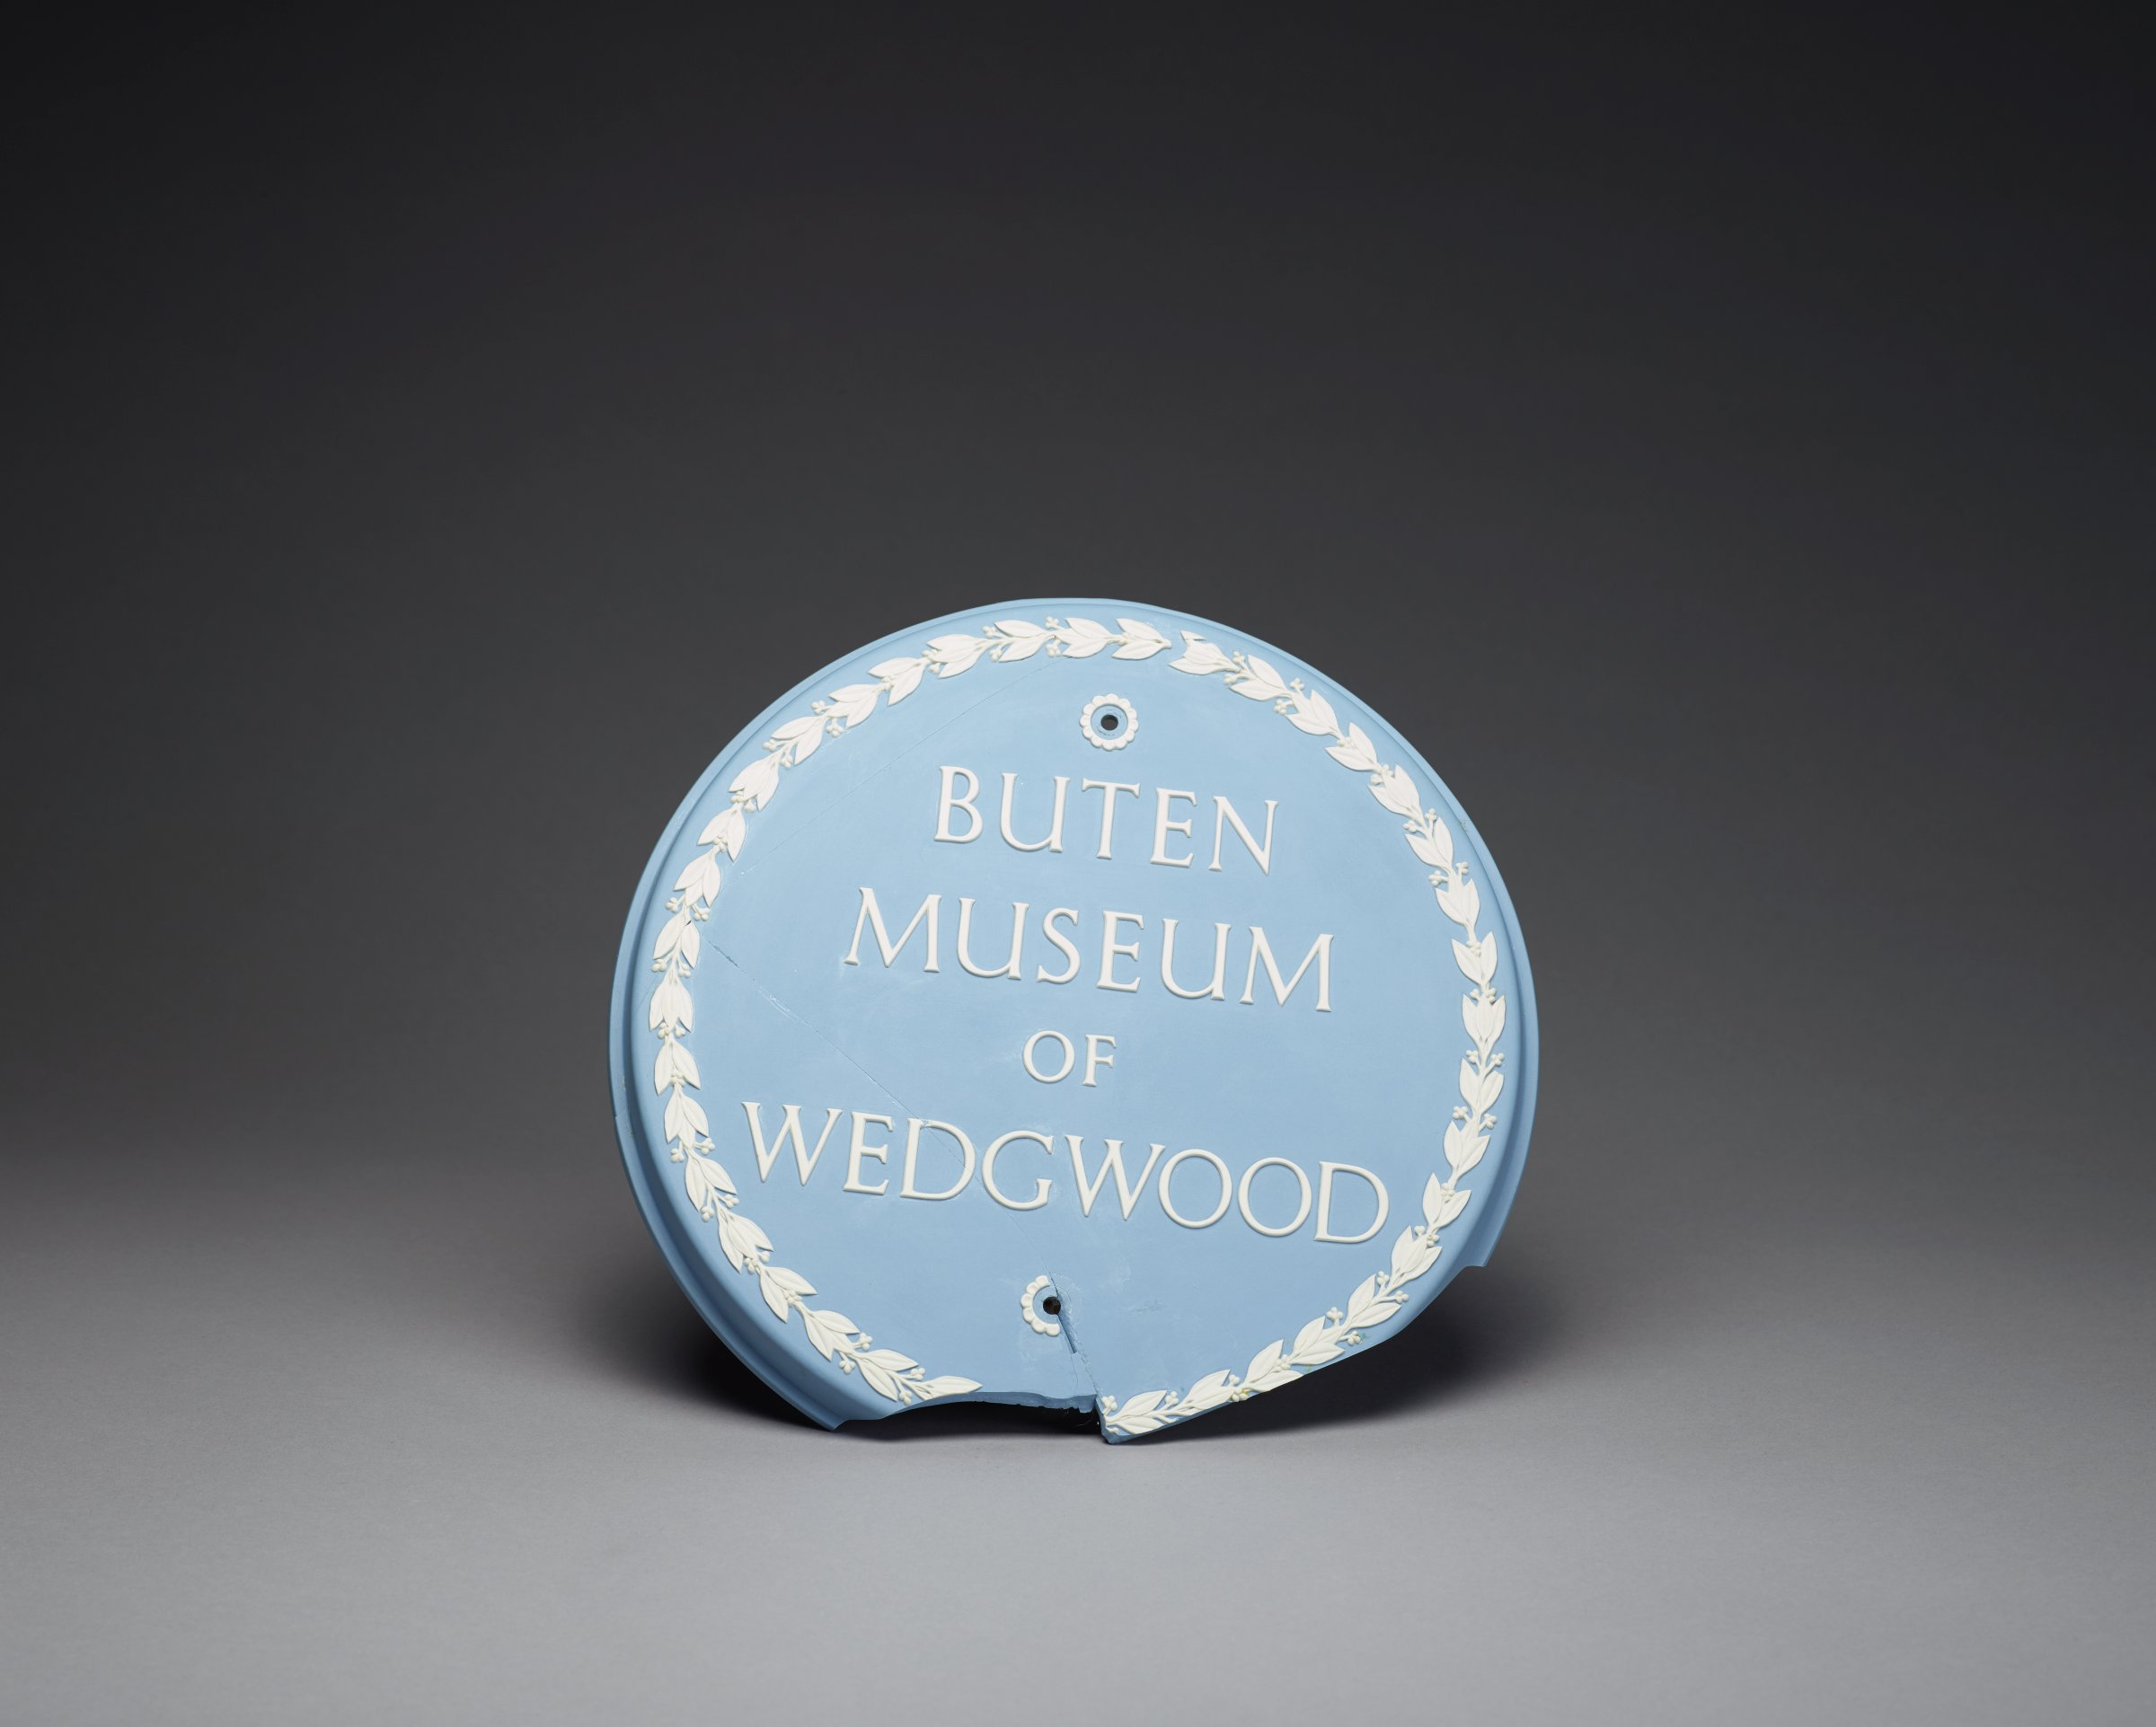 """Round plaque of solid blue jasper with border of leaves and berries in white relief, in the center the inscription """"BUTEN MUSEUM OF WEDGWOOD"""" in white relief and with two holes with flower petal borders in white relief, no doubt intended for hanging or mounting to a flat surface."""